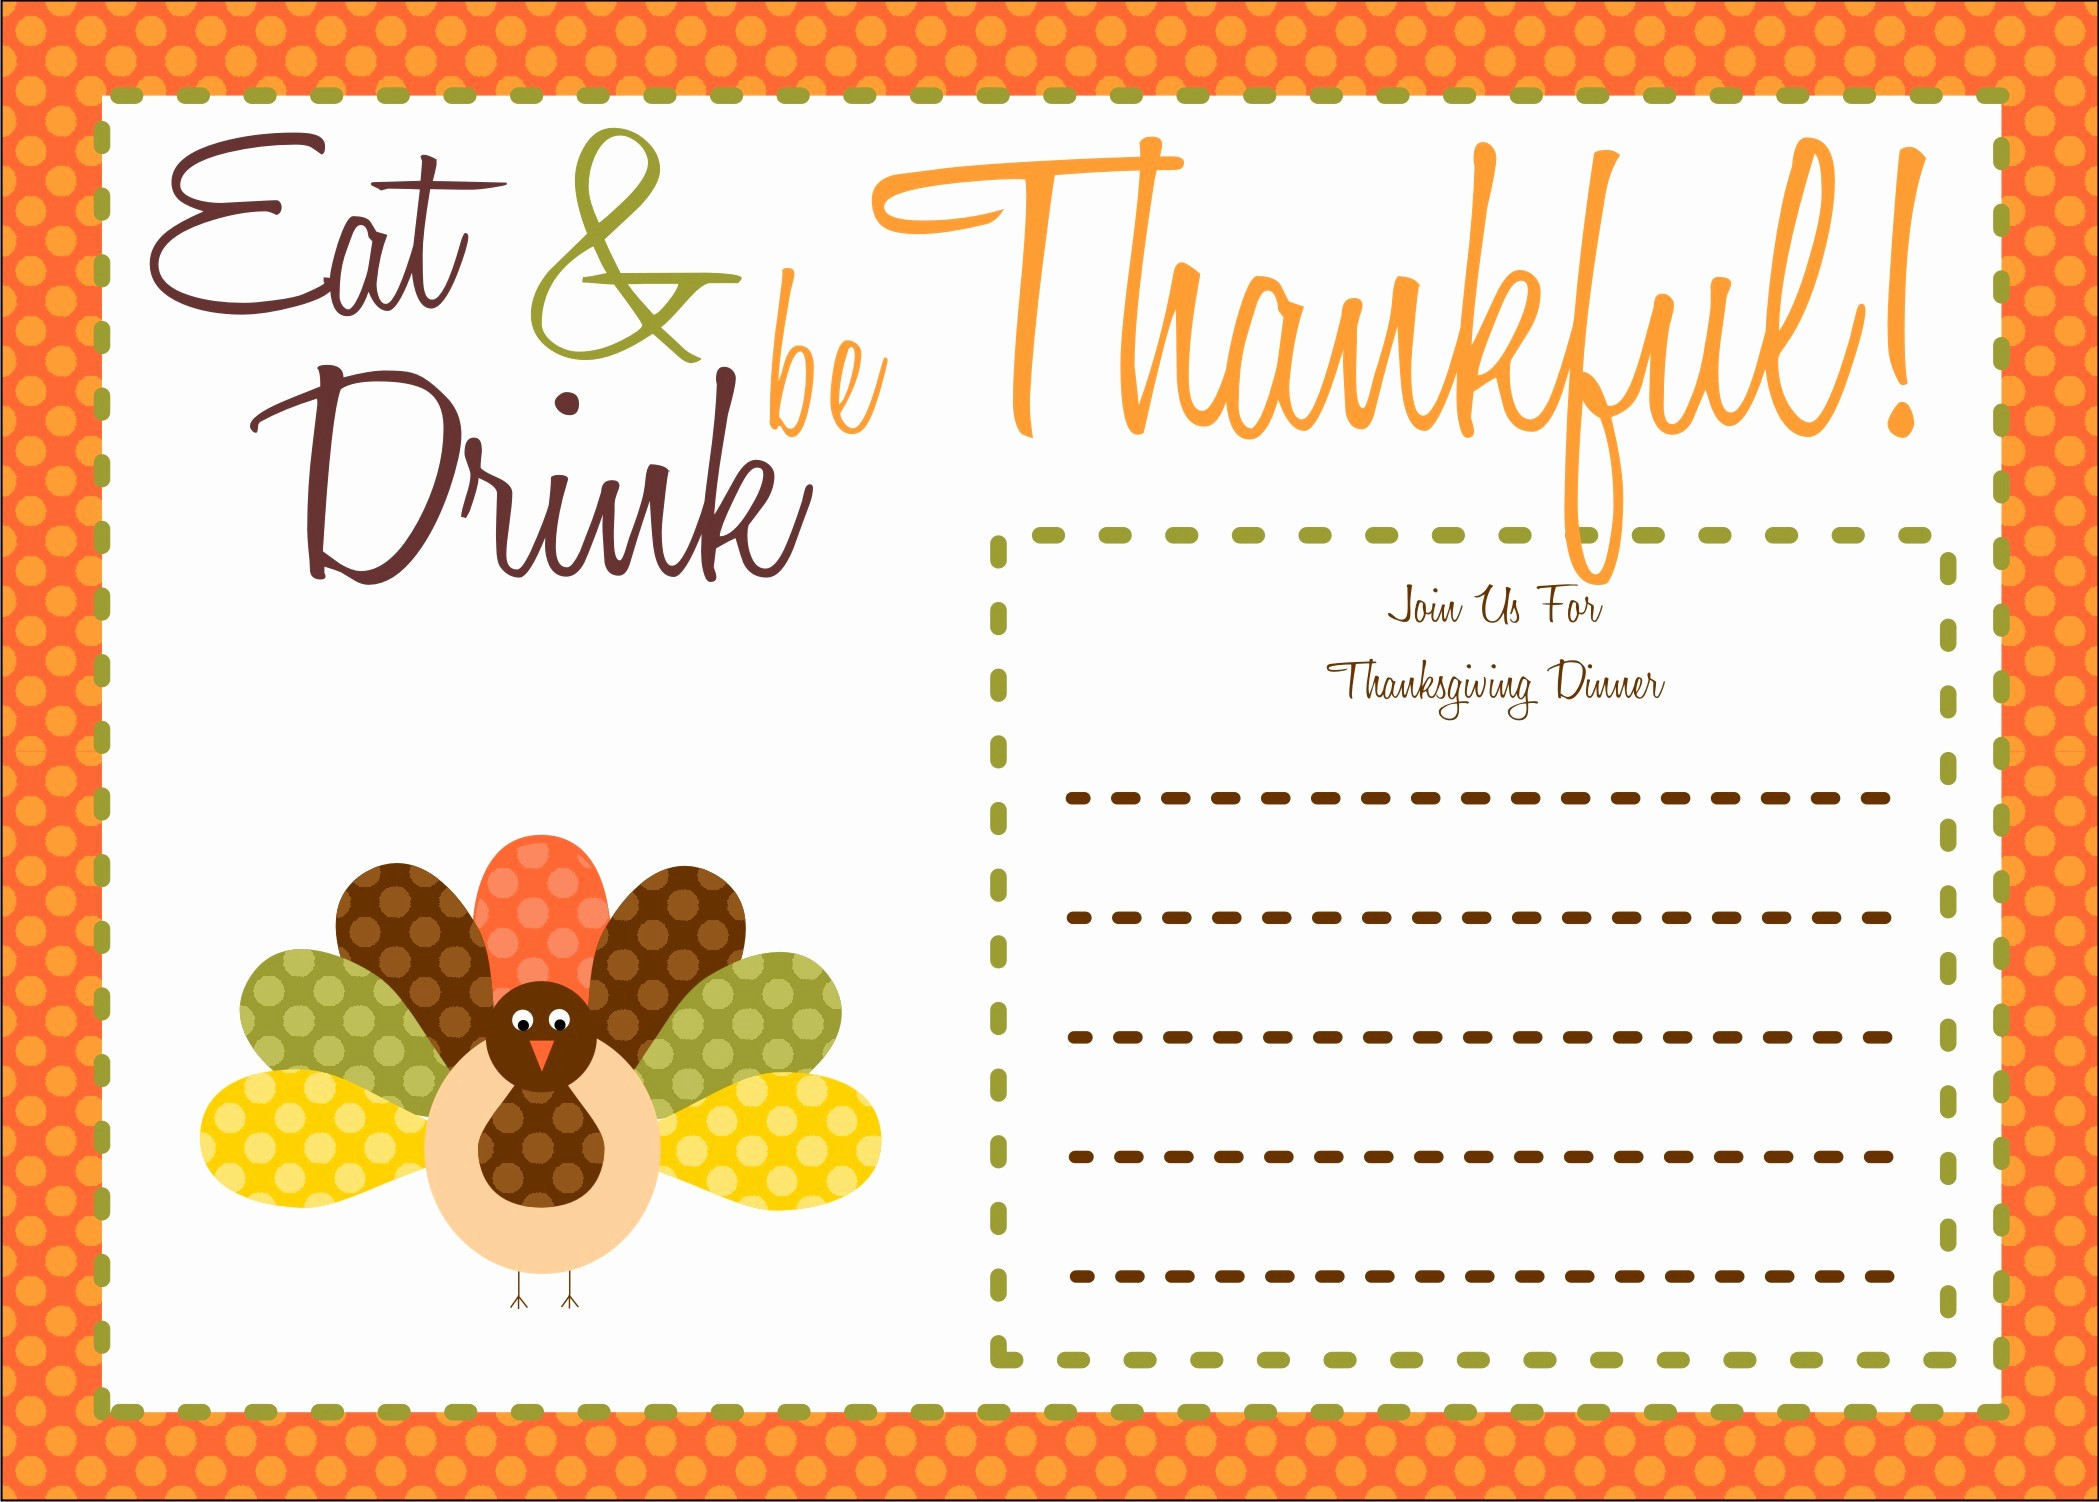 Potluck Invitation Template Free Printable Inspirational Thanksgiving Potluck Invitation Templates – Happy Easter